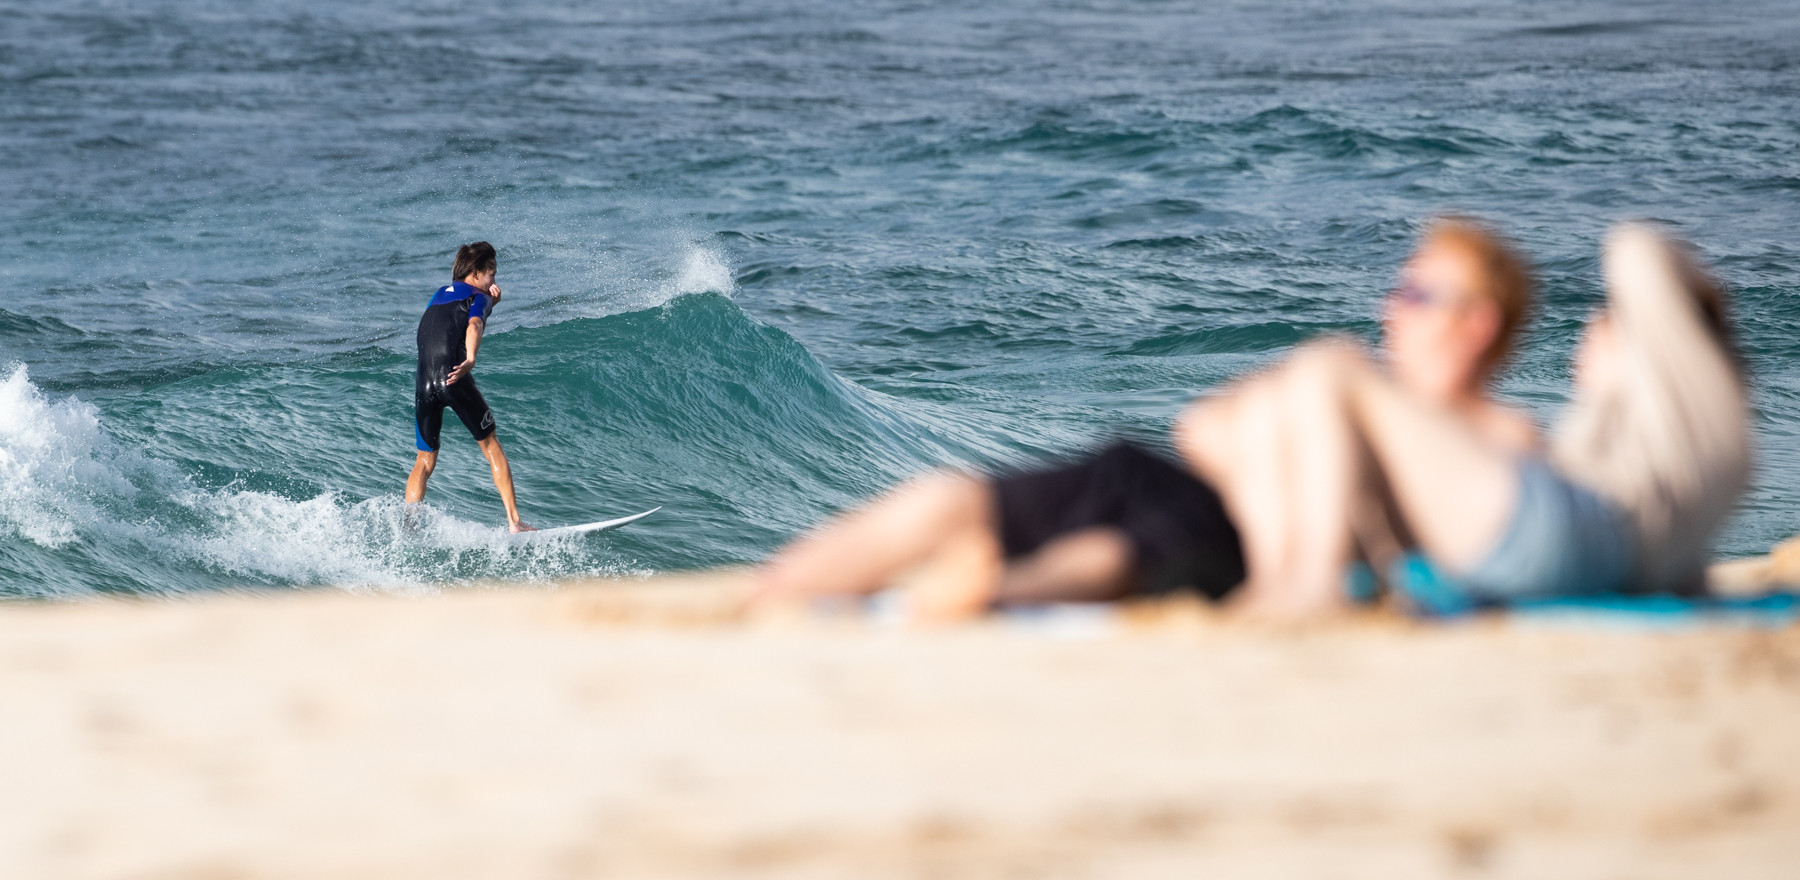 A giant's world surfer...